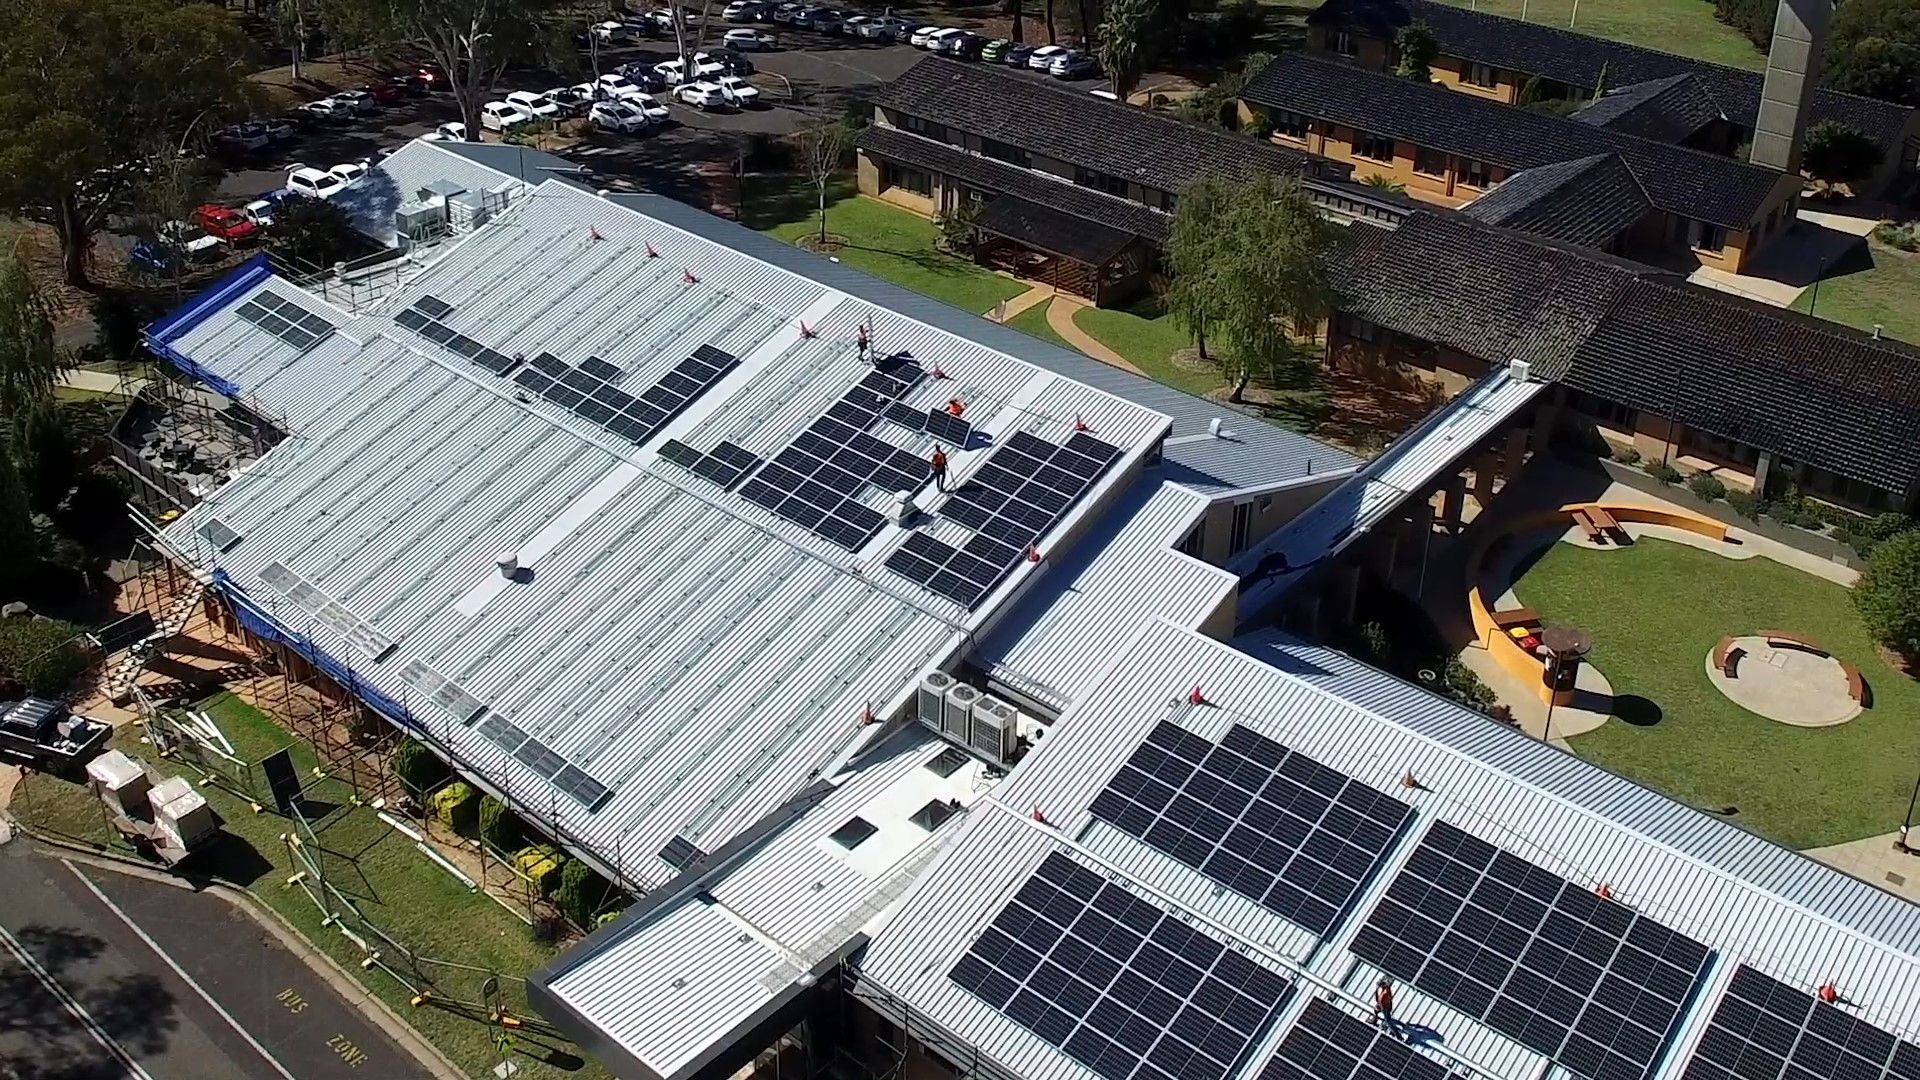 Solar panel expansion shines light on Charles Sturt commitment to sustainability